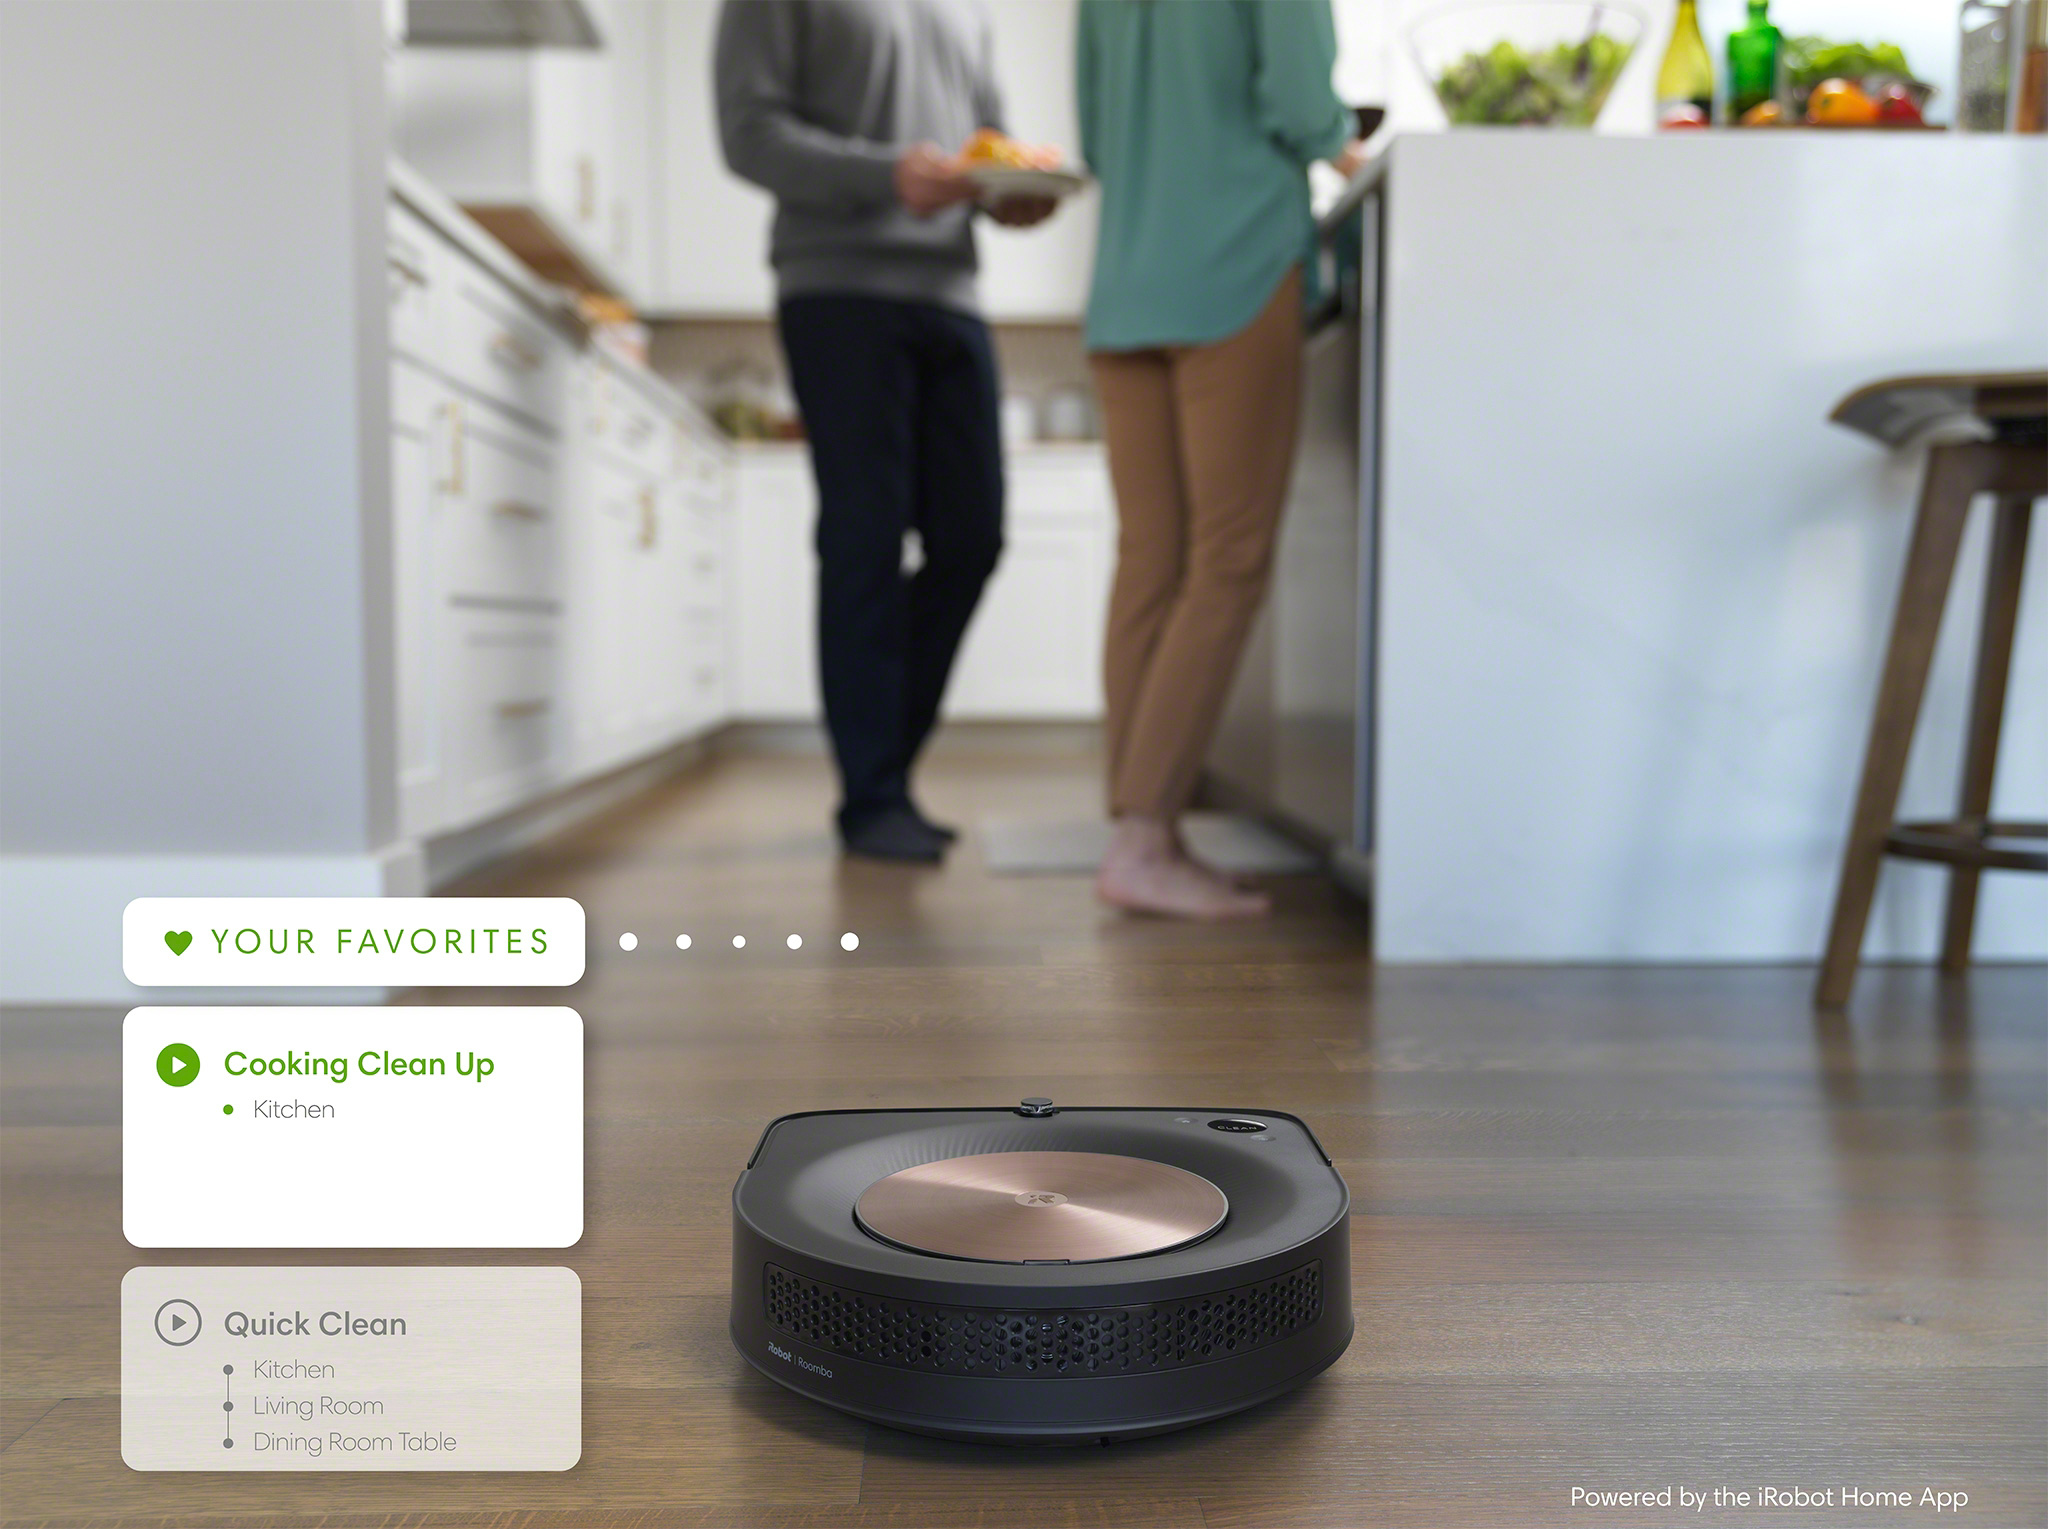 """Favorites in the new iRobot Home App enable users to quickly create and access their own pre-set cleaning routines. Create favorites like, """"After Dinner"""" that instructs the robot to clean the dining room and in front of the kitchen counter. Or """"Bedtime"""" to clean the playroom and living room floors. Or """"Everywhere"""" to clean the whole home."""